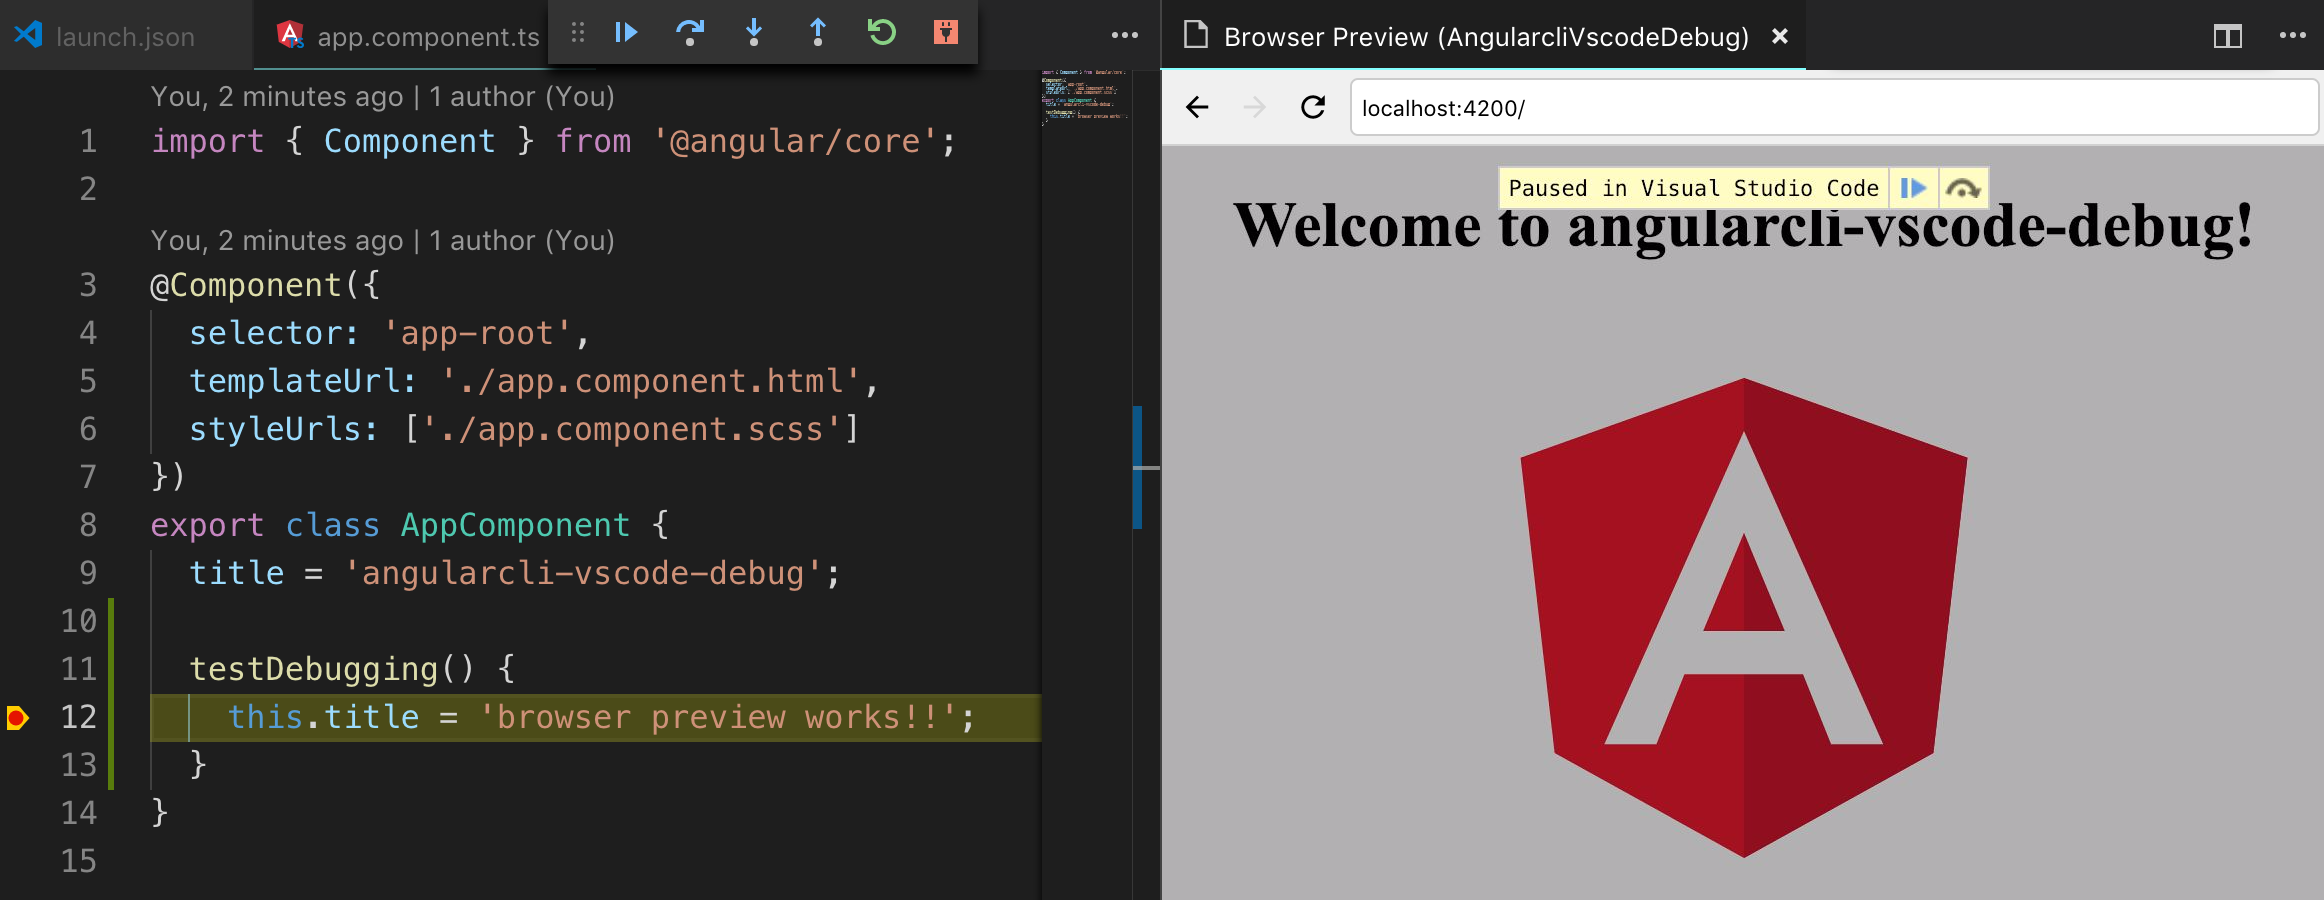 Debugging Angular CLI Apps inside VSCode with Browser Preview